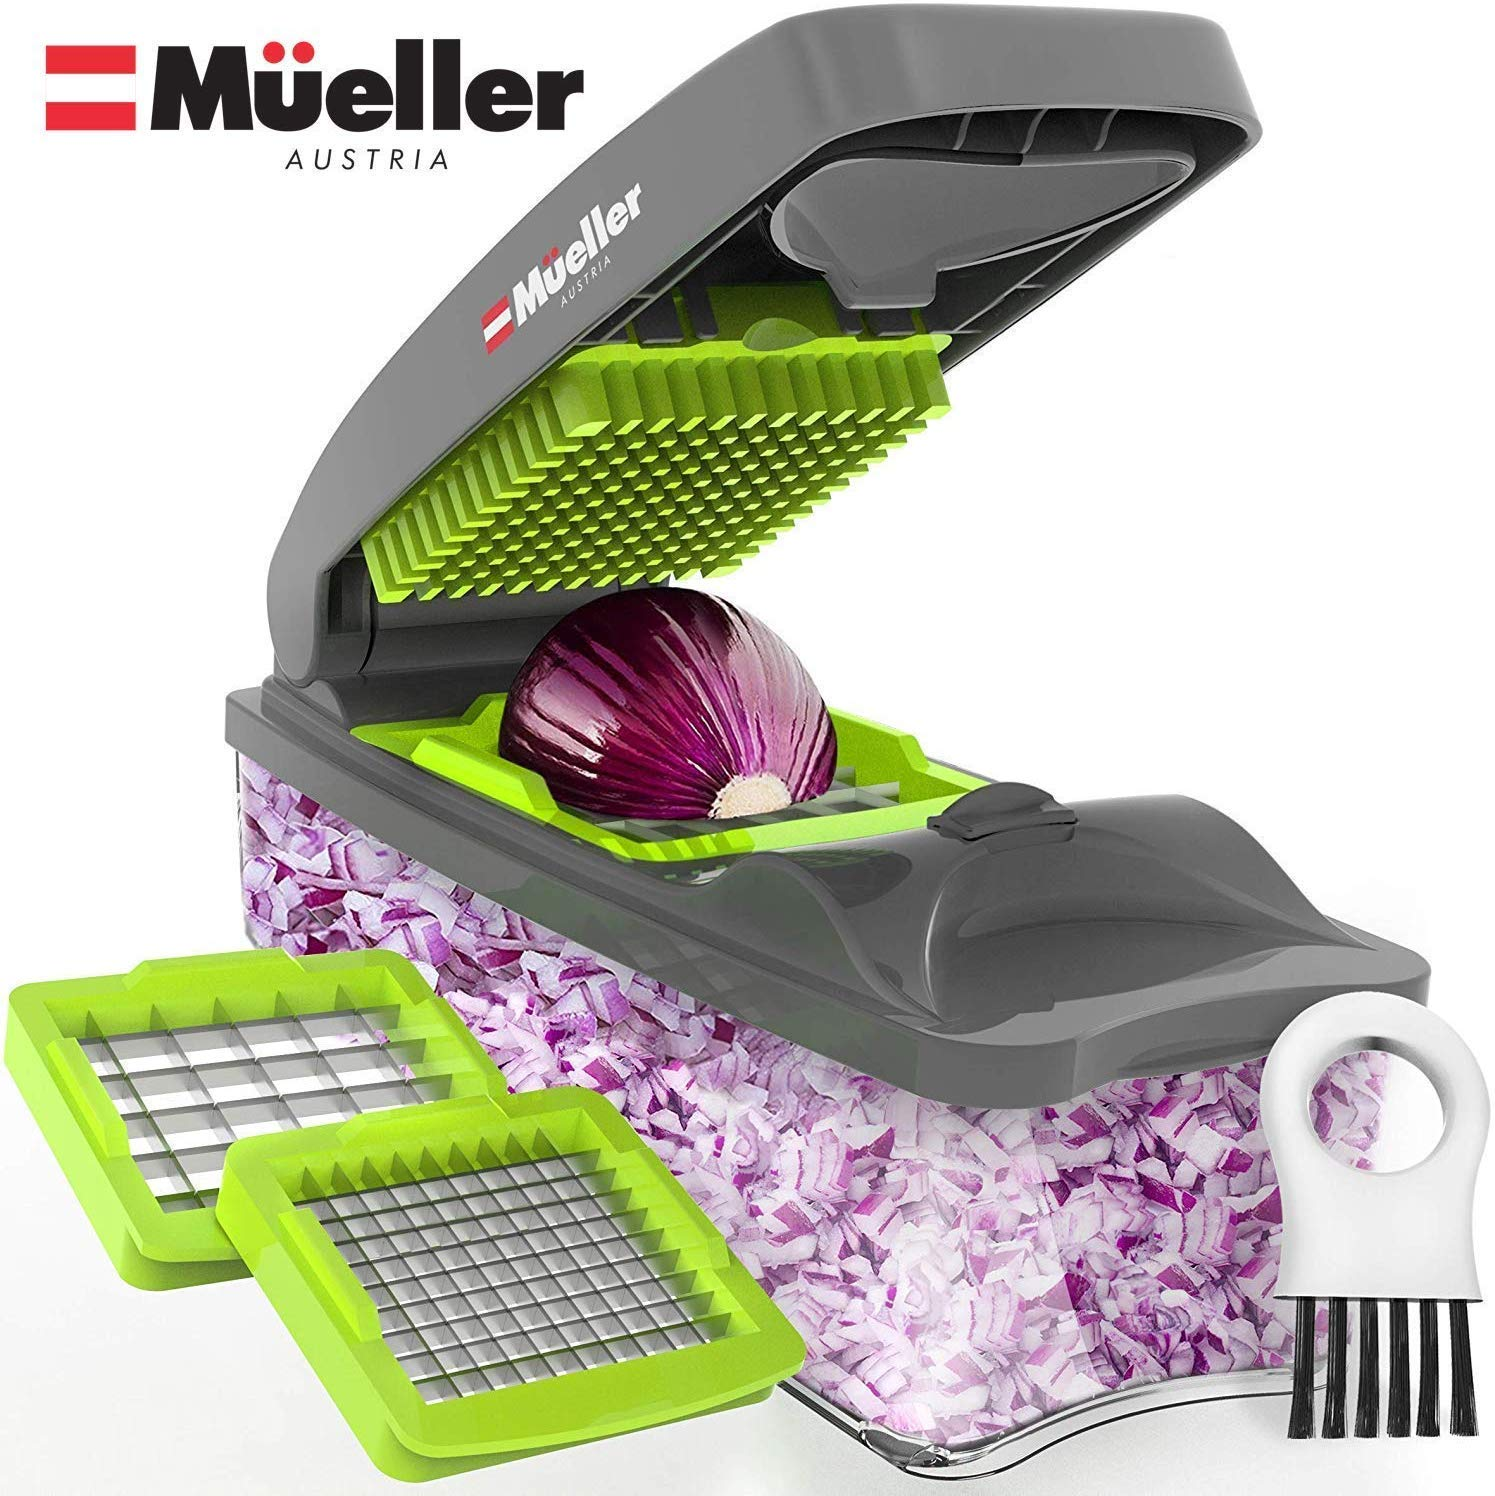 Mueller Onion Chopper